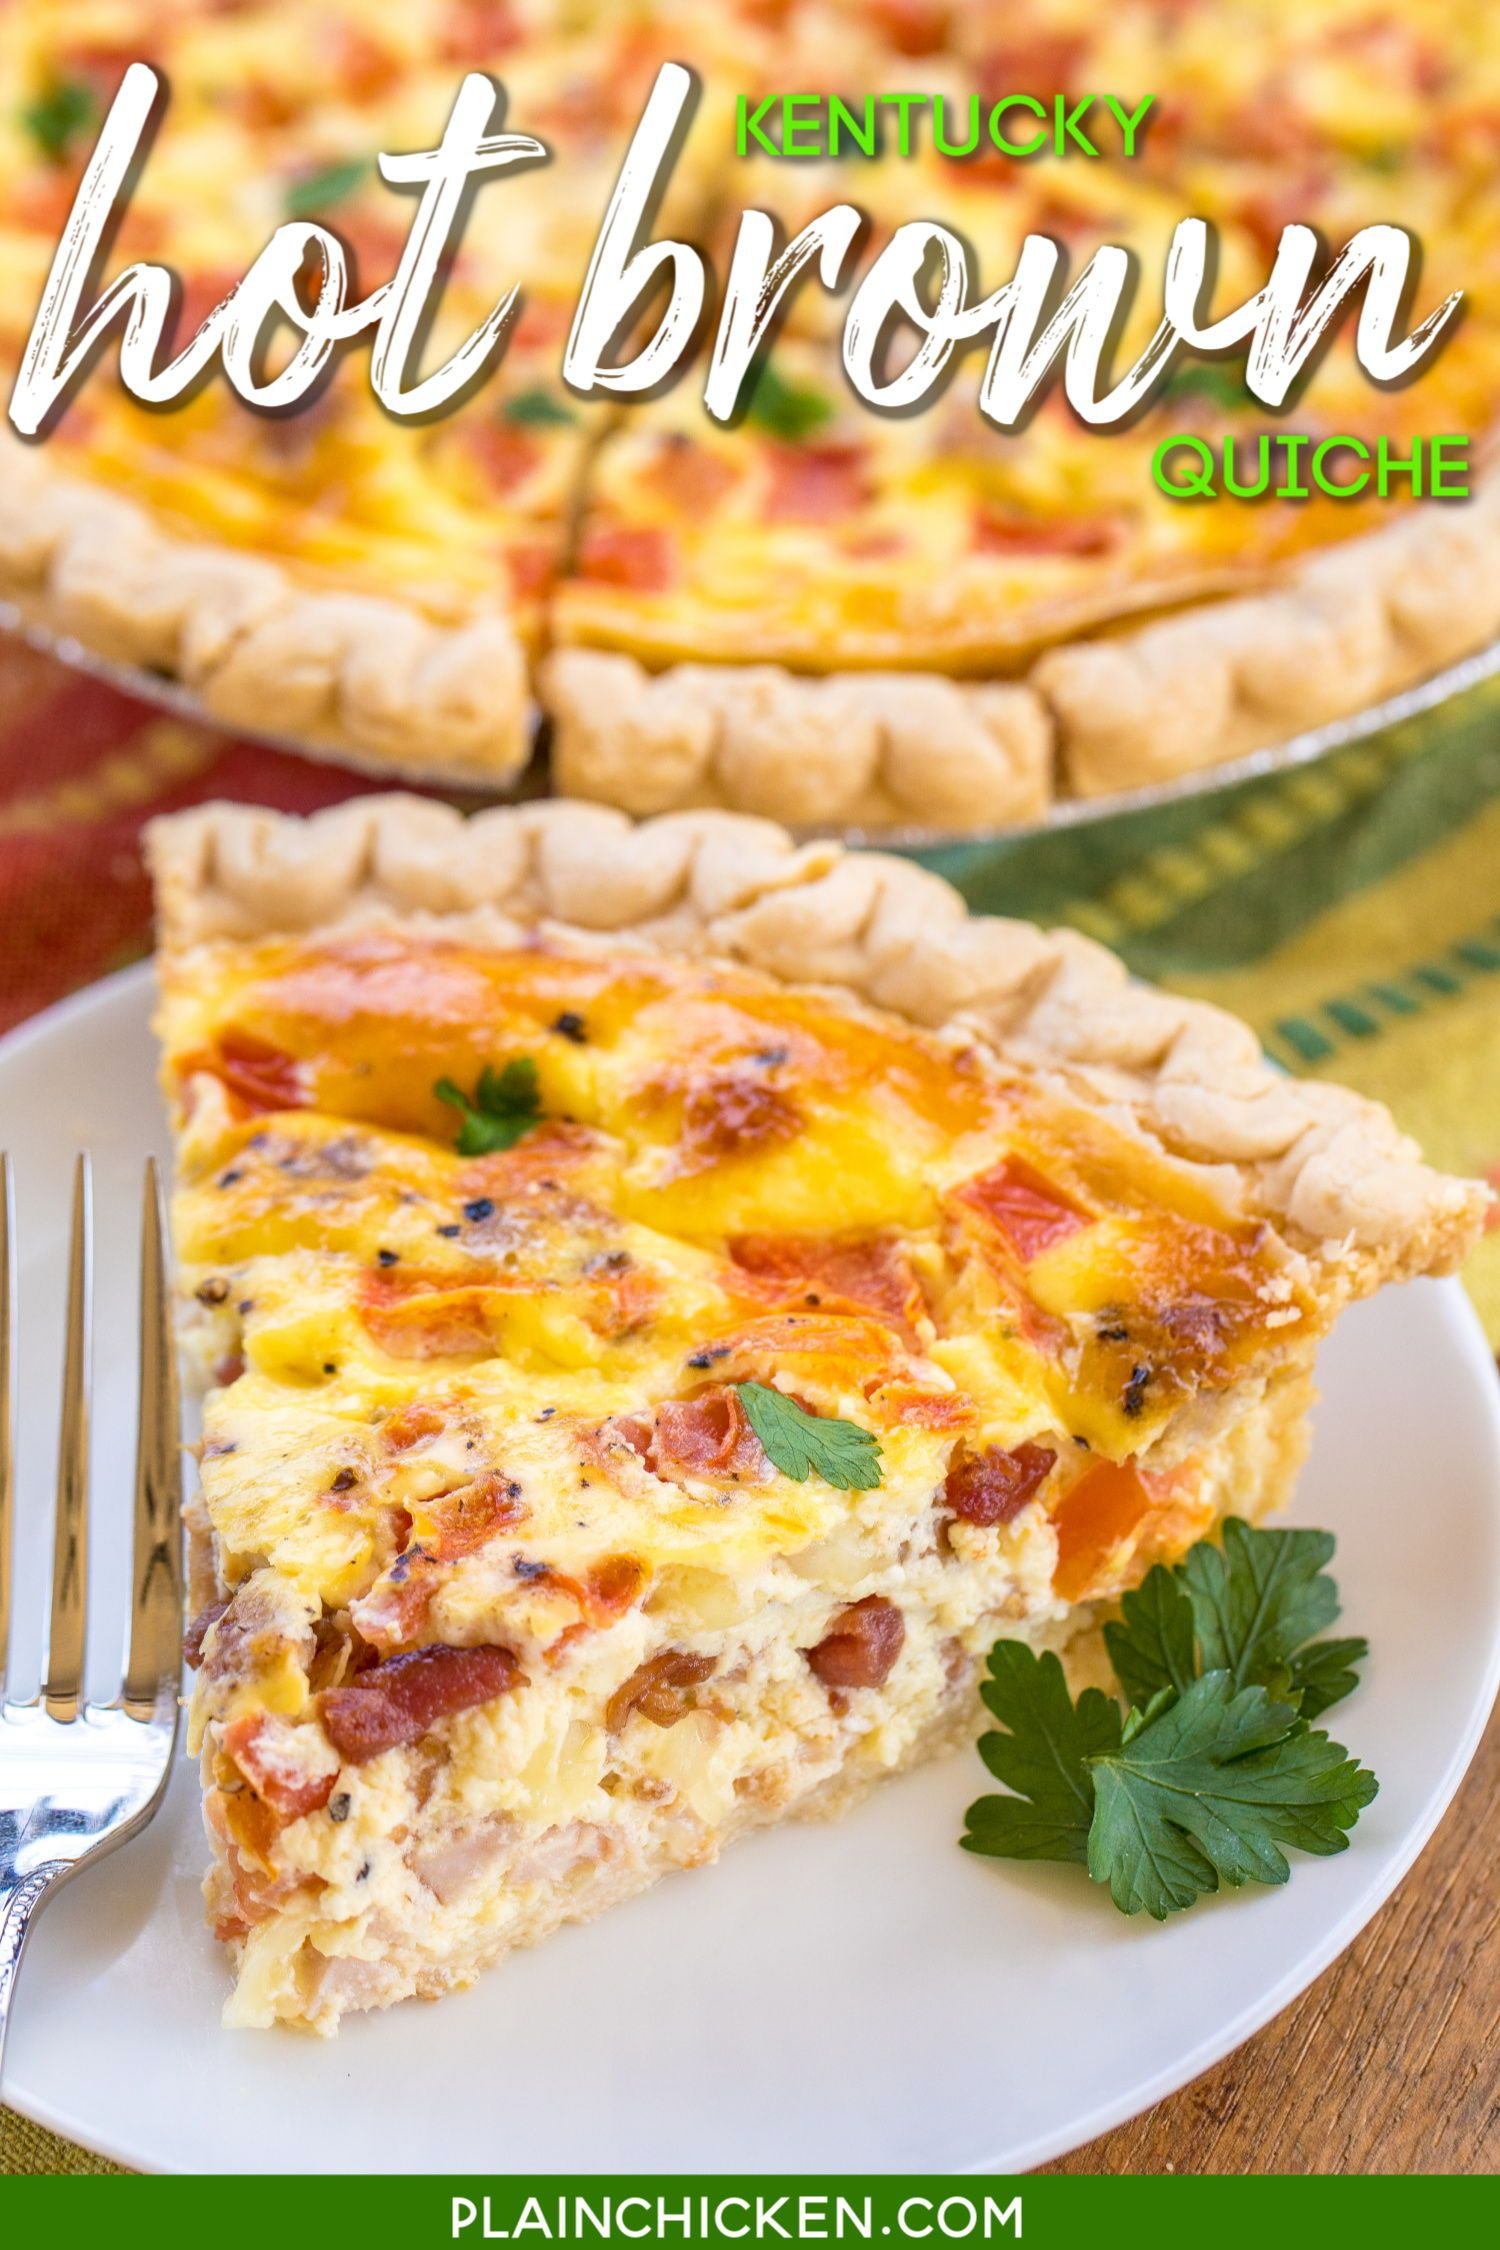 Kentucky Hot Brown Quiche In 2020 Breakfast Brunch Recipes Quiche Recipes Breakfast Brunch